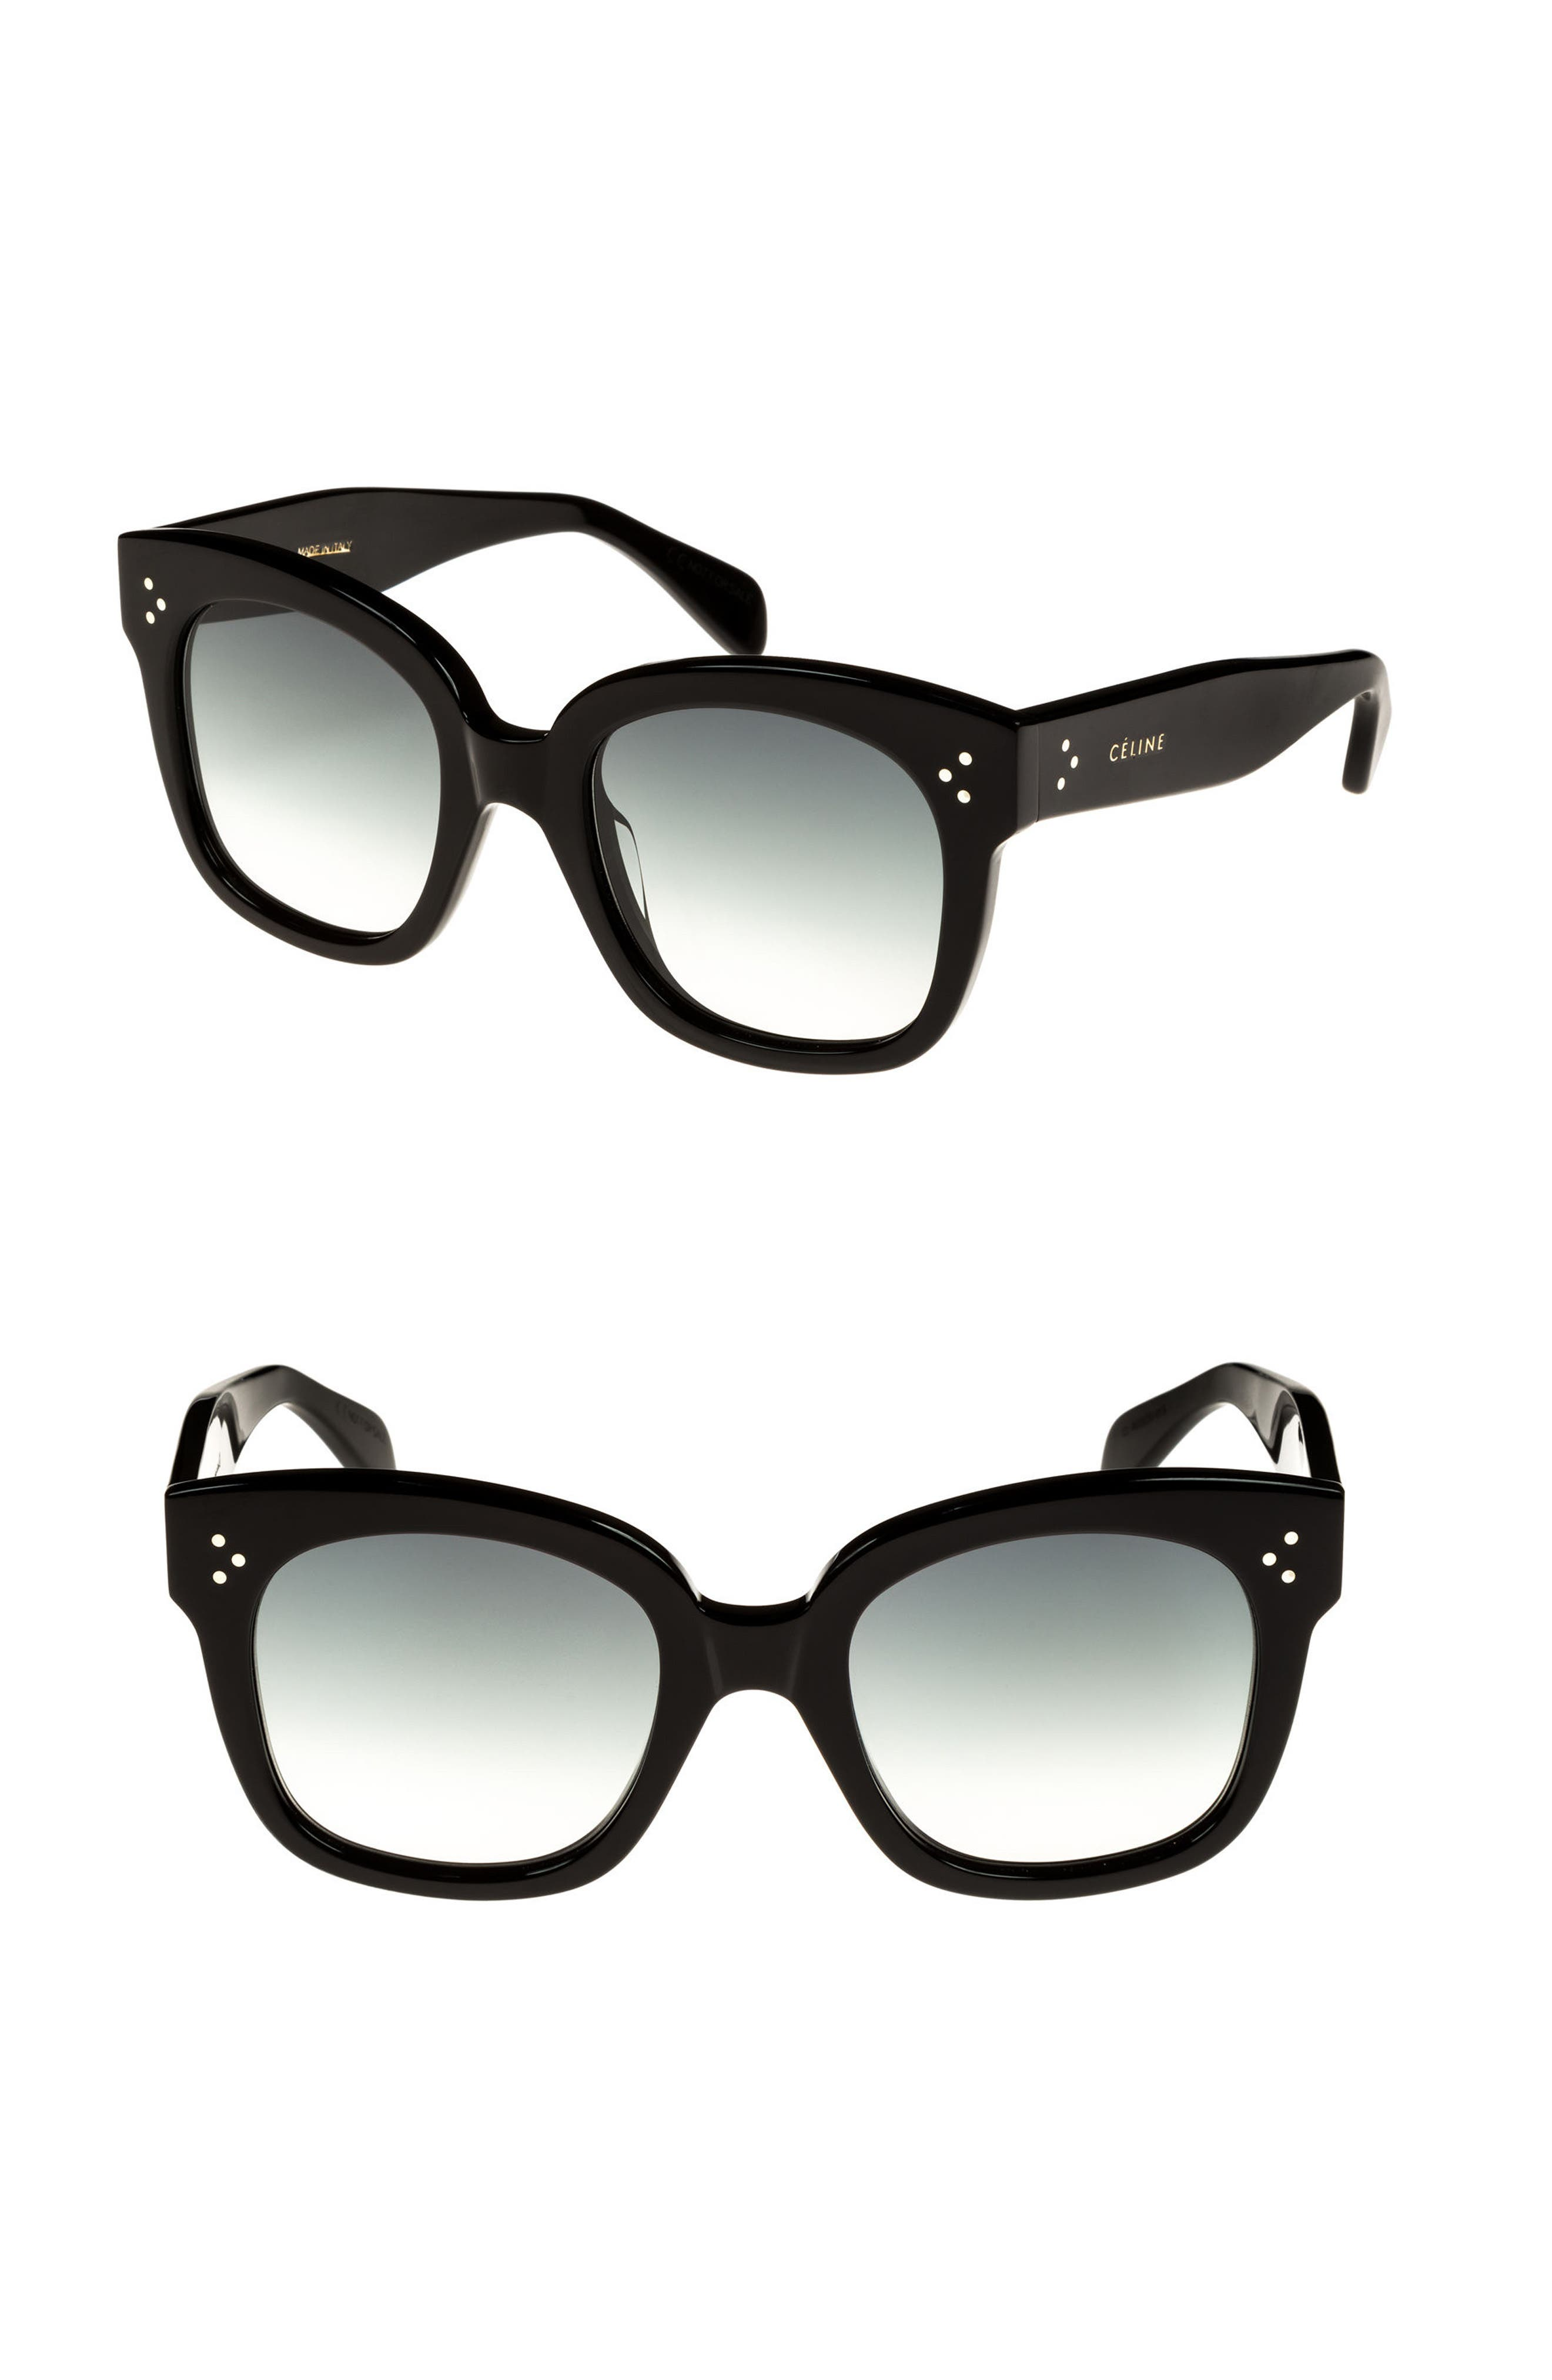 54mm Square Sunglasses,                         Main,                         color, Black/ Smoke